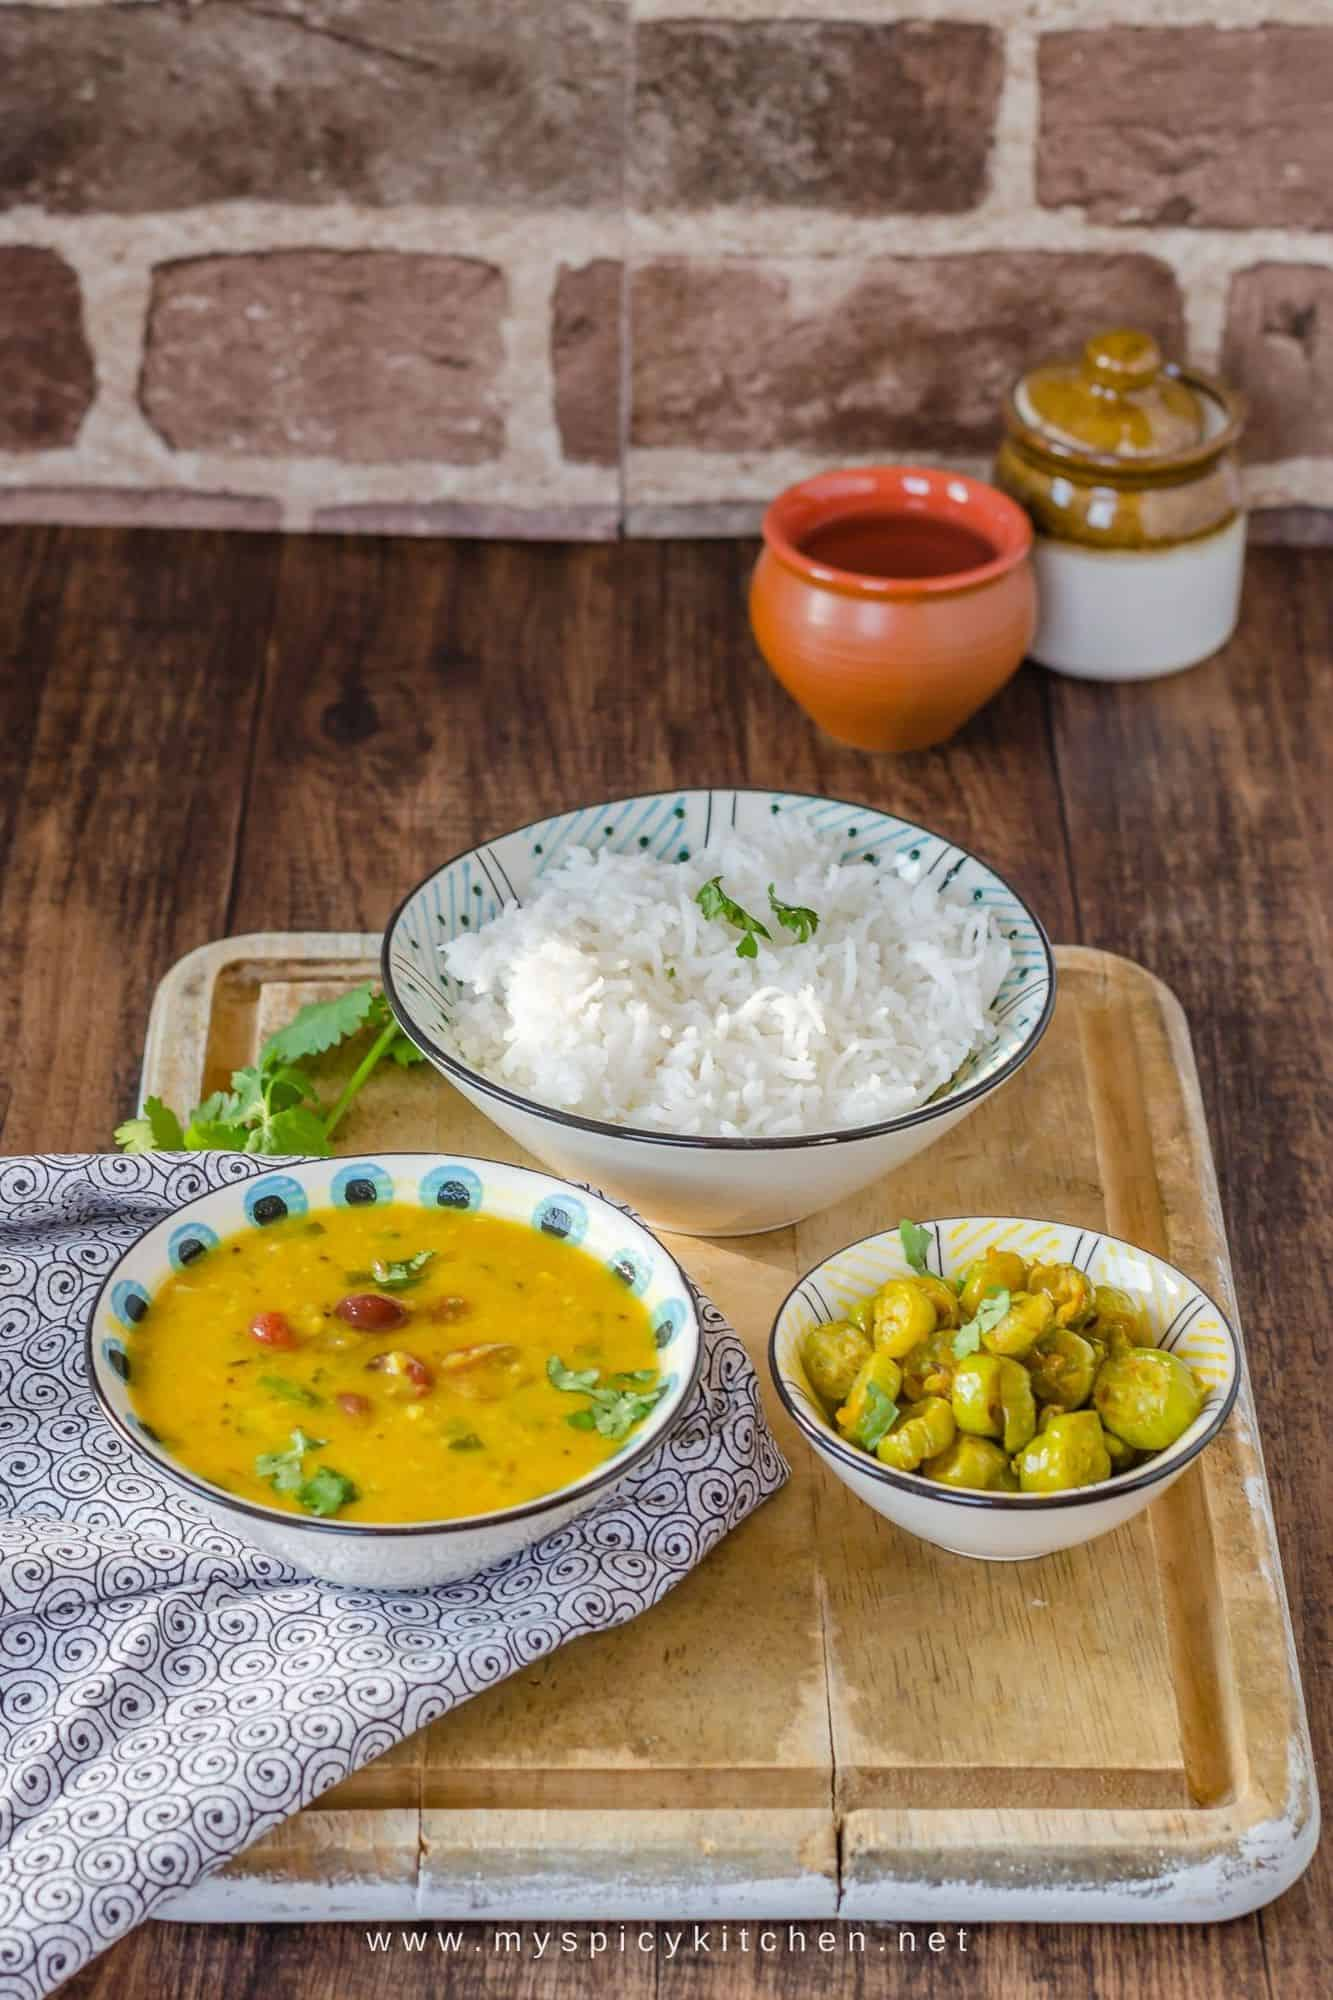 A simple meal, cranberry dal, ivy gourd fry and rice on a wooden board.